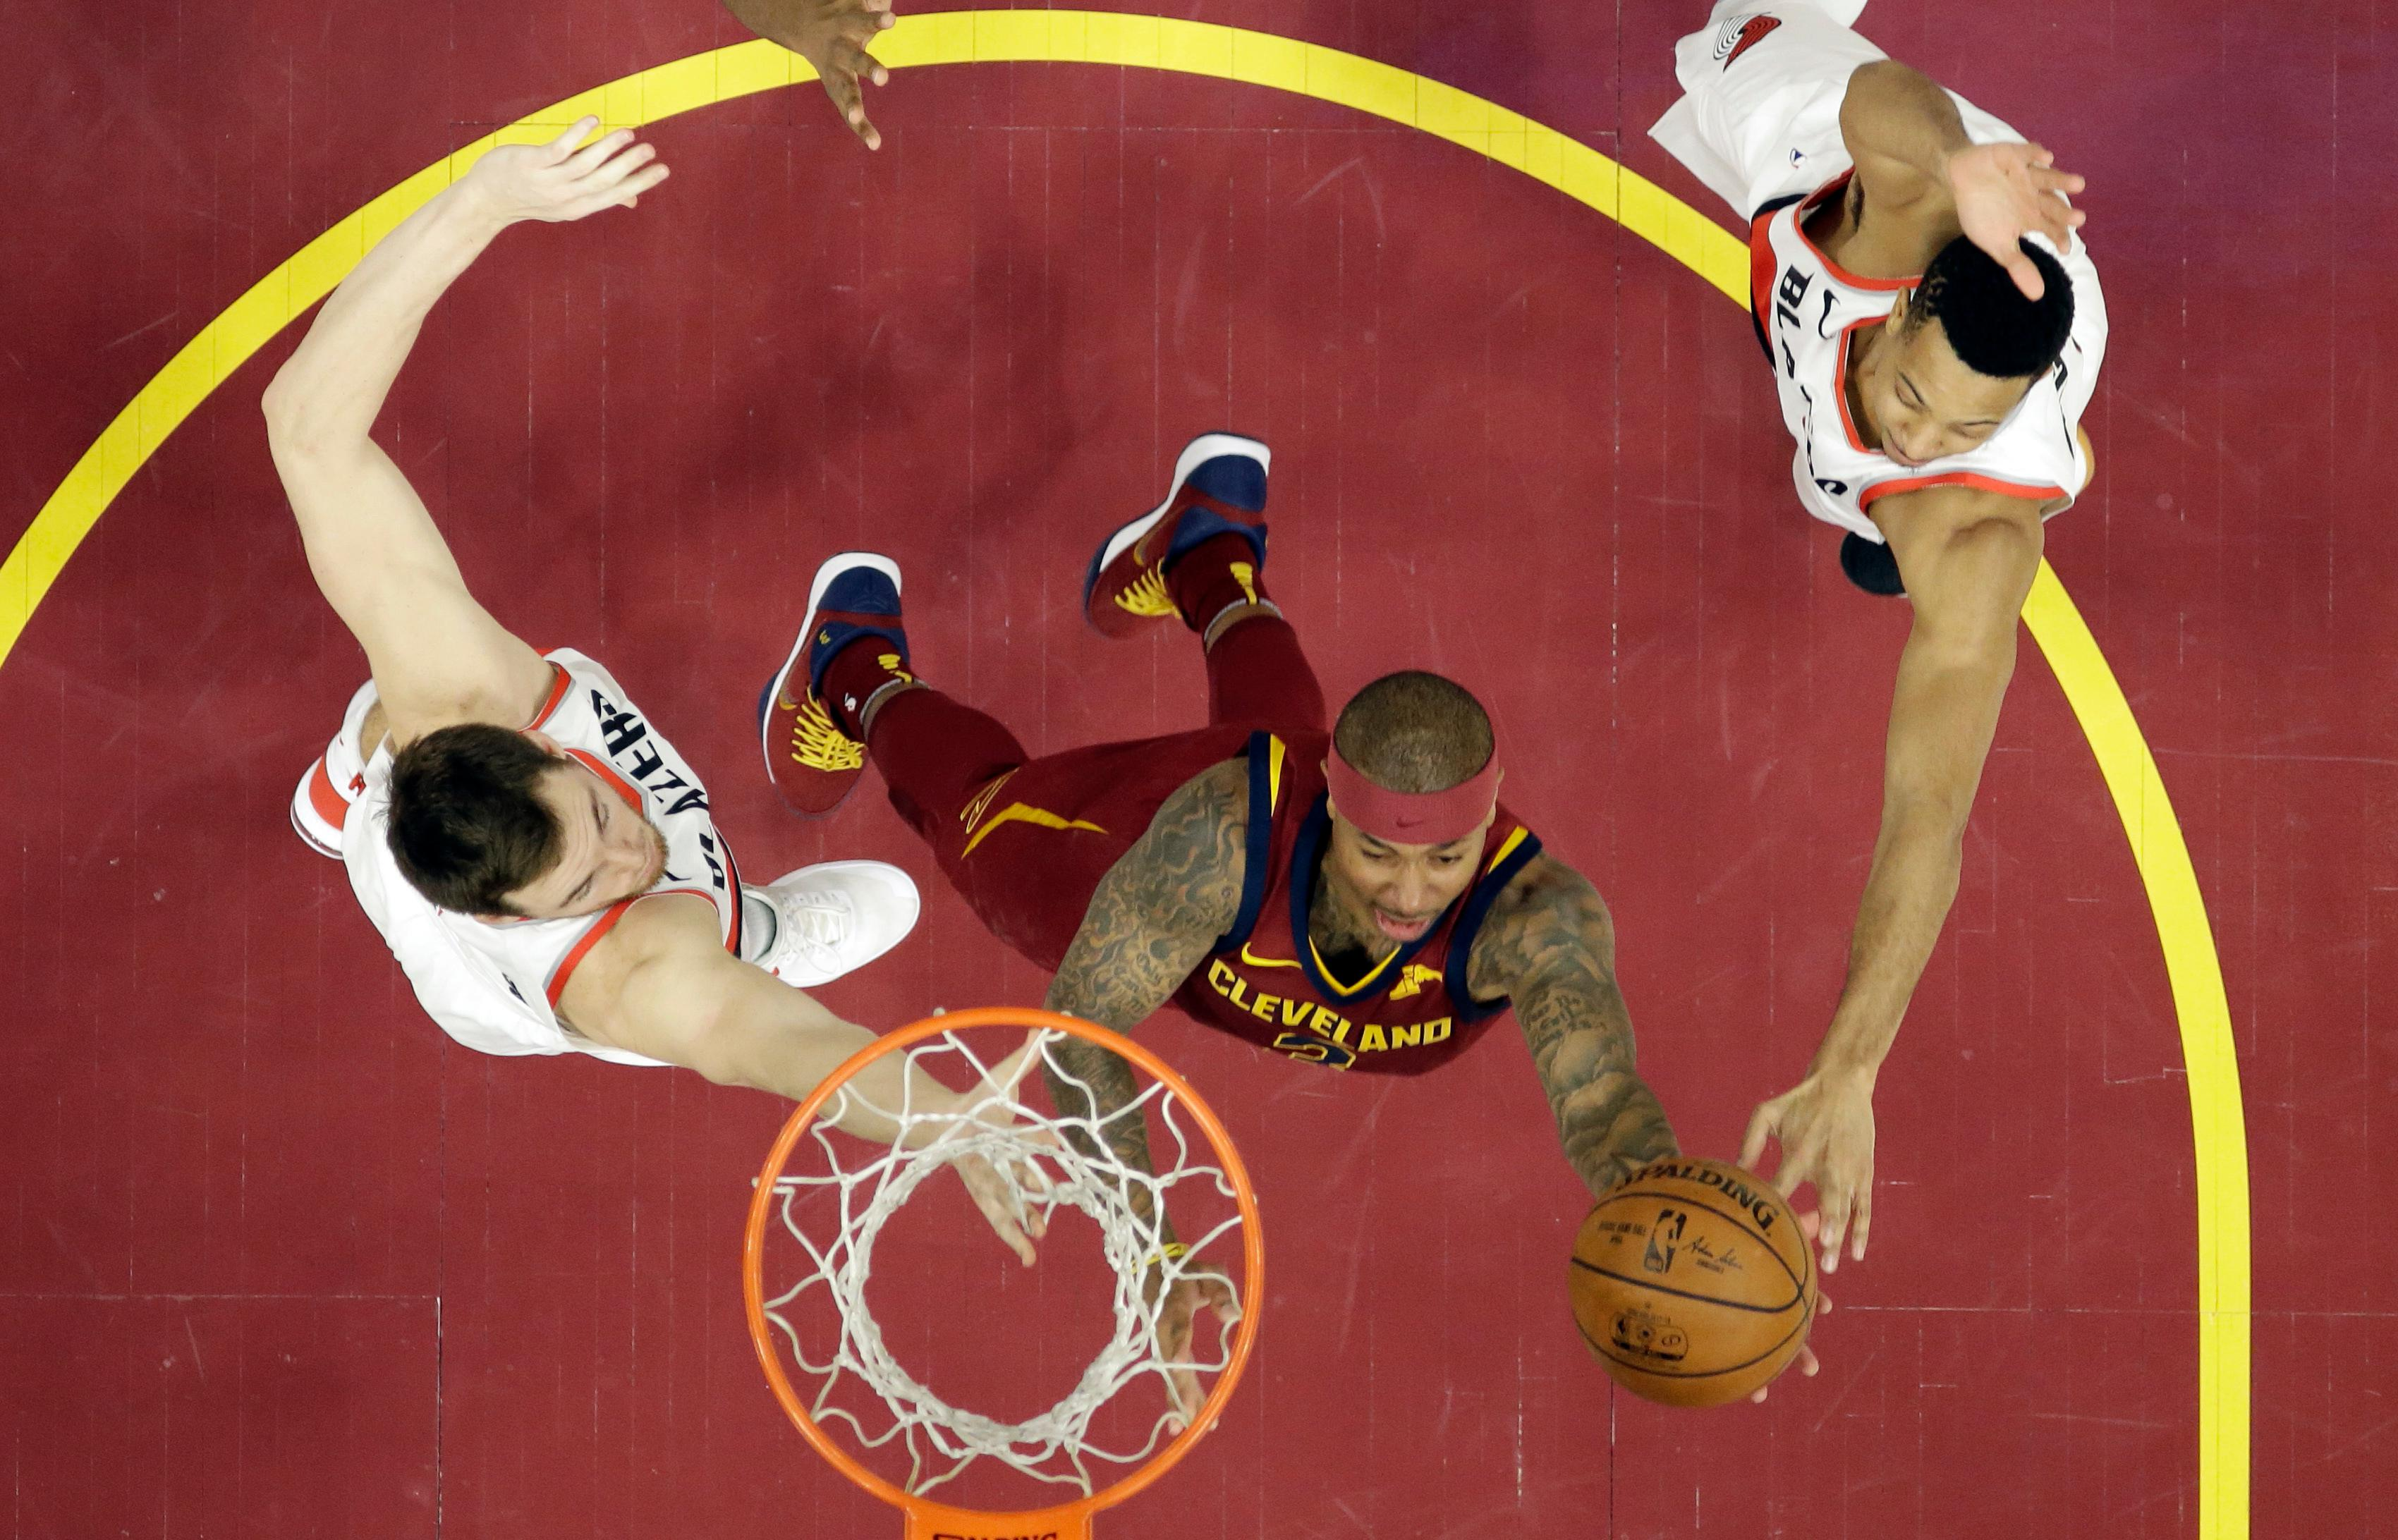 Cleveland Cavaliers' Isaiah Thomas, center, drives to the basket against Portland Trail Blazers' Pat Connaughton, left, and CJ McCollum in the second half of an NBA basketball game, Tuesday, Jan. 2, 2018, in Cleveland. The Cavaliers won 127-110. (AP Photo/Tony Dejak)